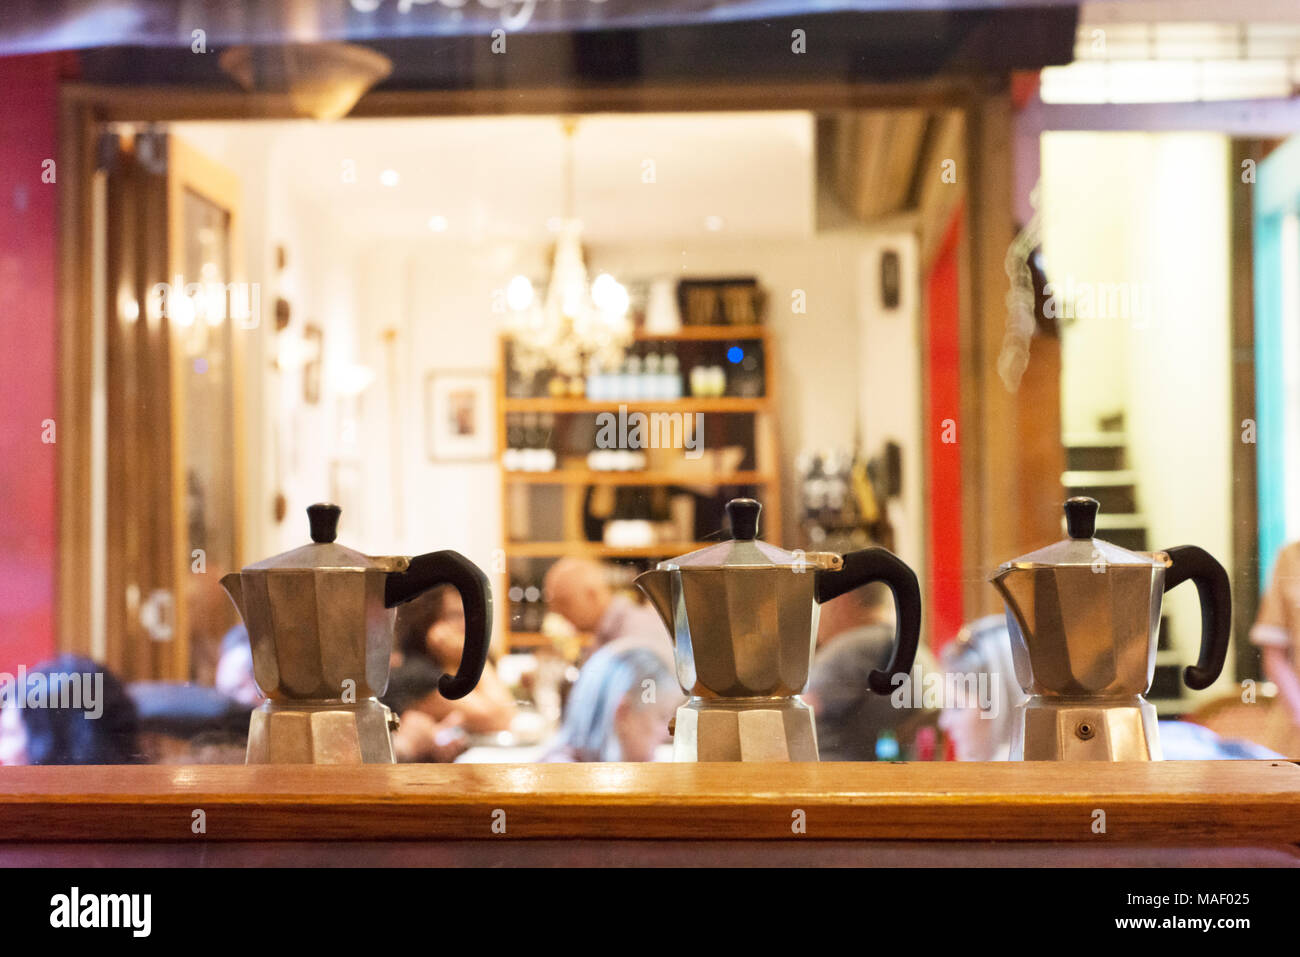 Coffee pots and café patrons in one of Melbourne's laneway cafes. - Stock Image